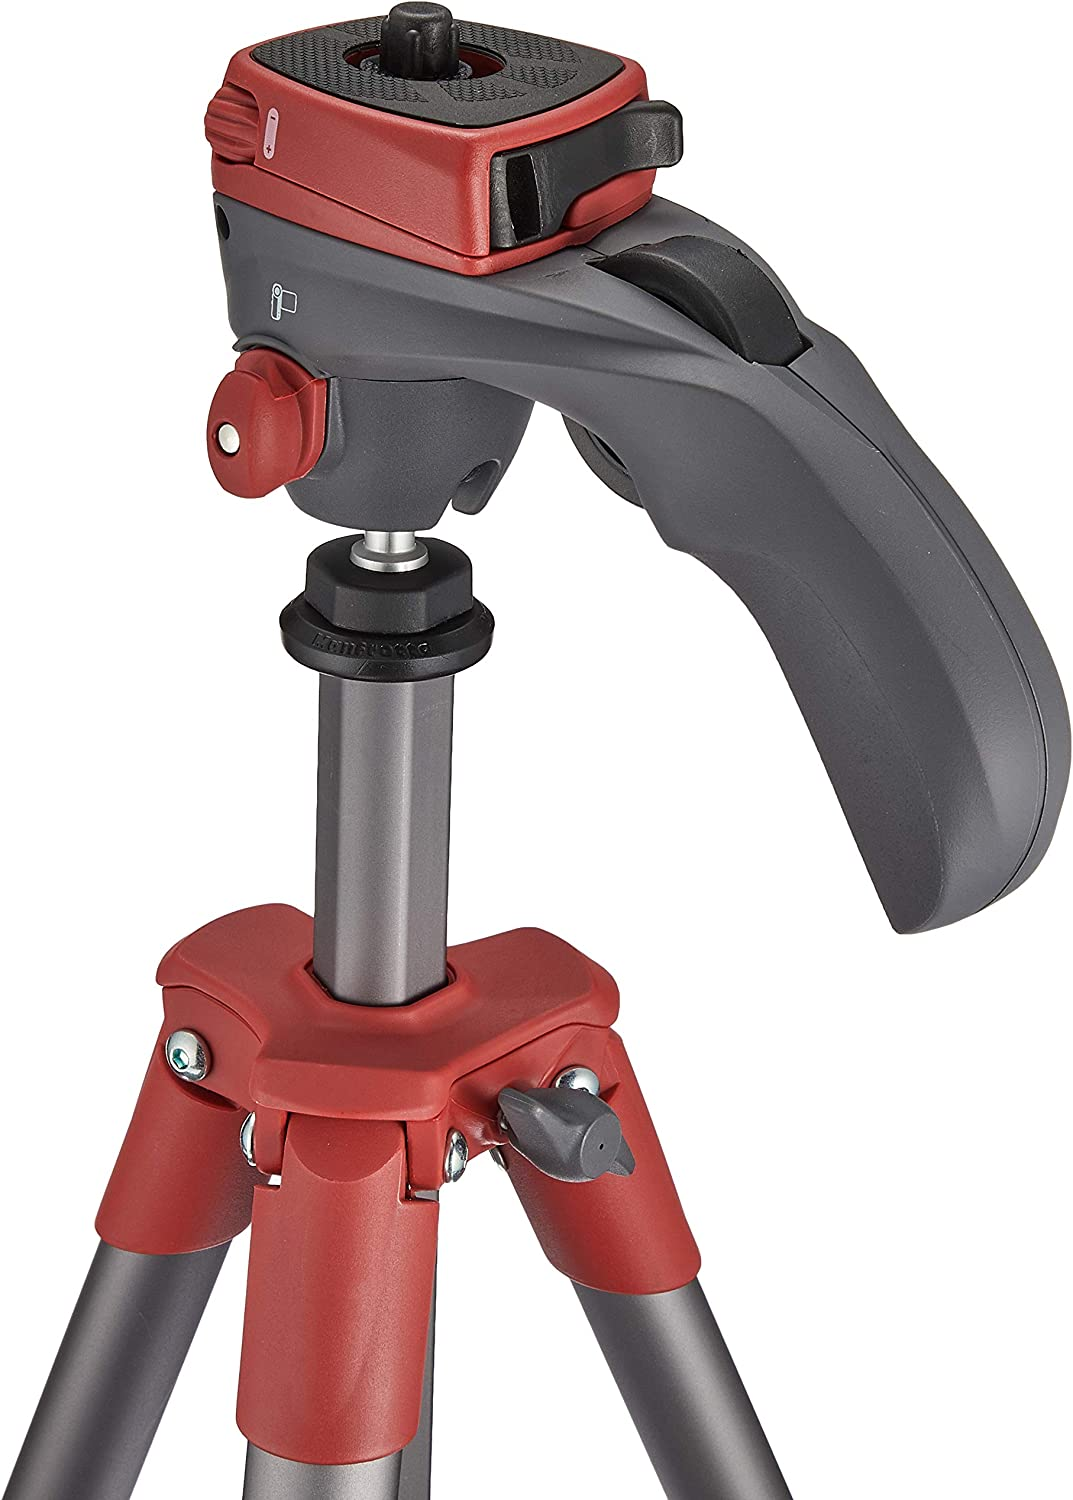 Manfrotto Compact Action Aluminium Tripod with Hybrid Head forEntry-Level DSLRs Mirrorless up to 1.5kg Black